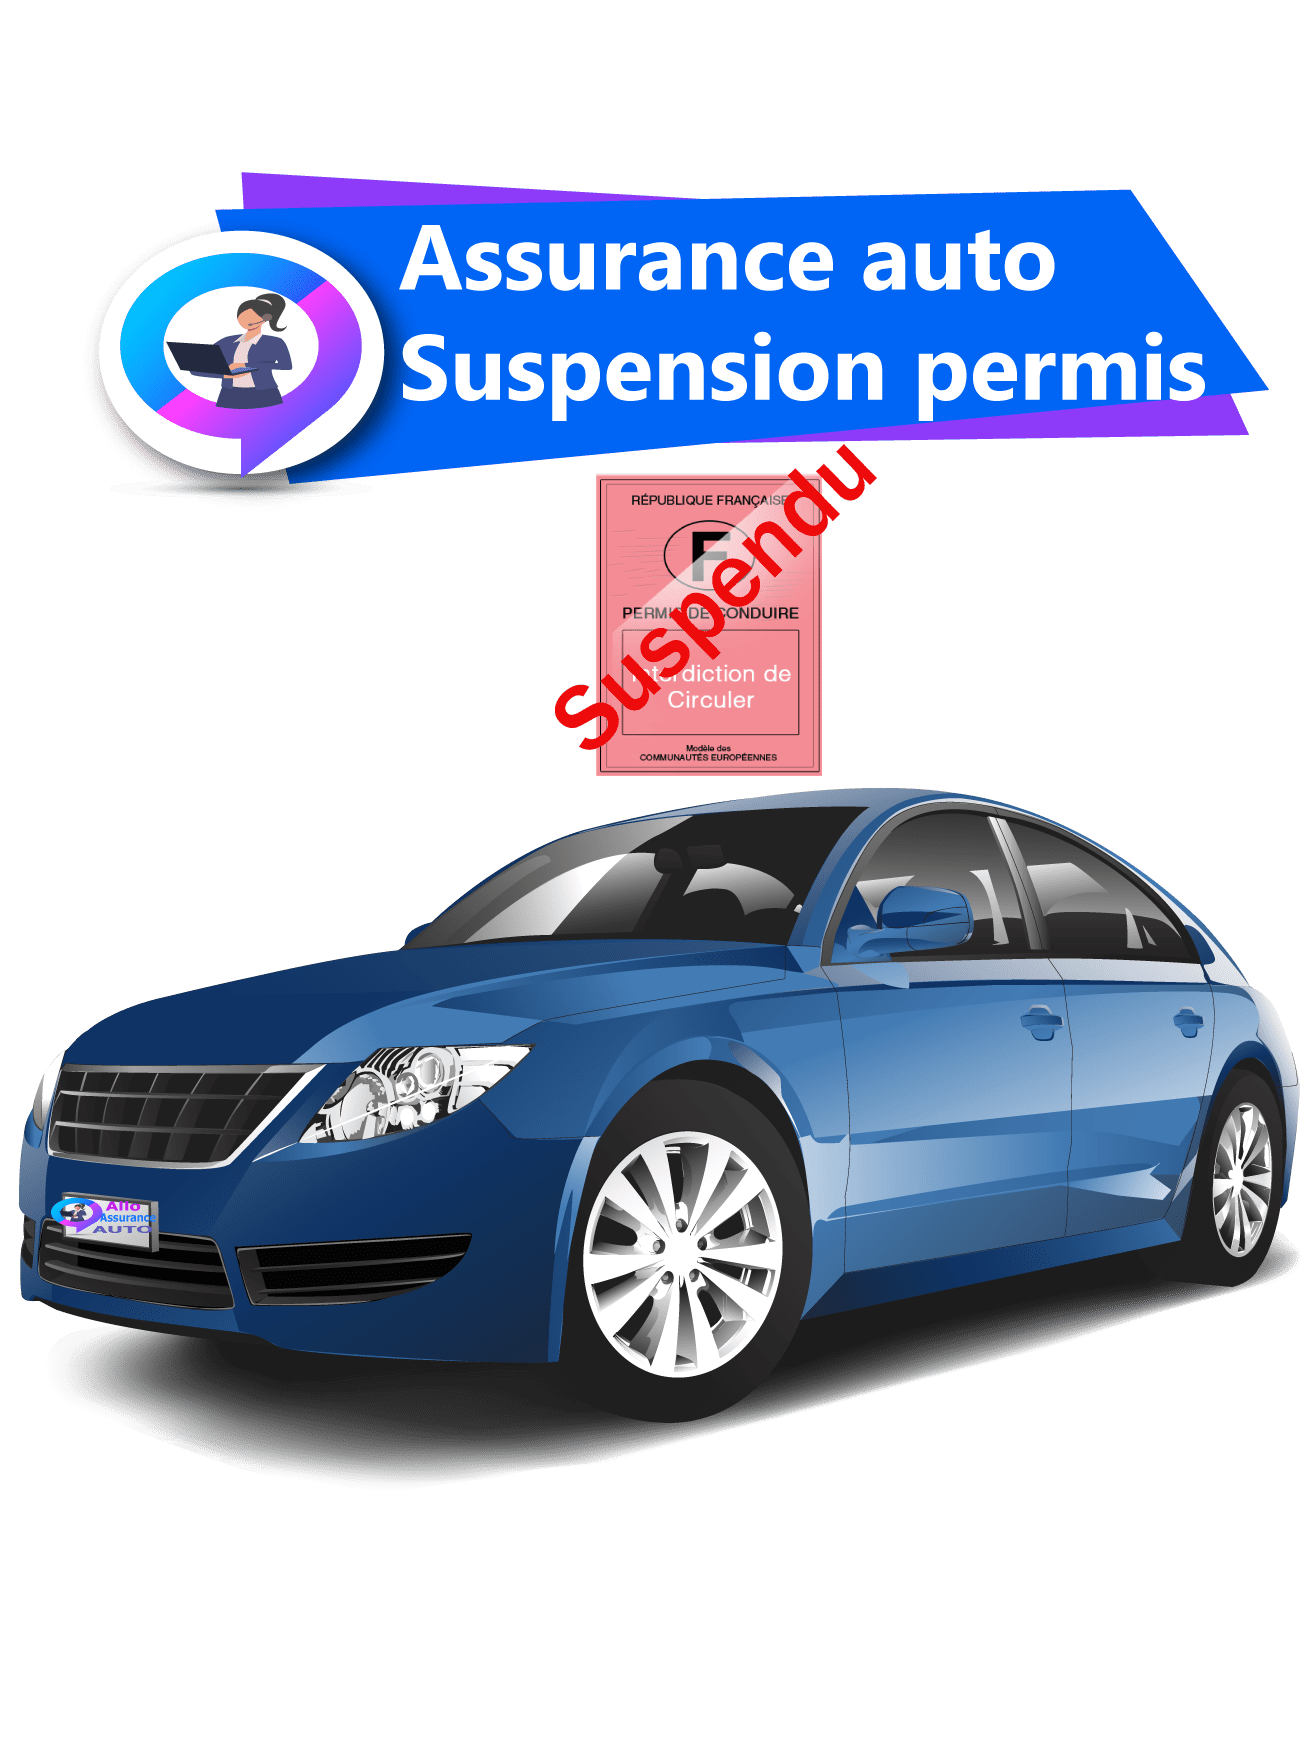 Assurance auto suspension permis